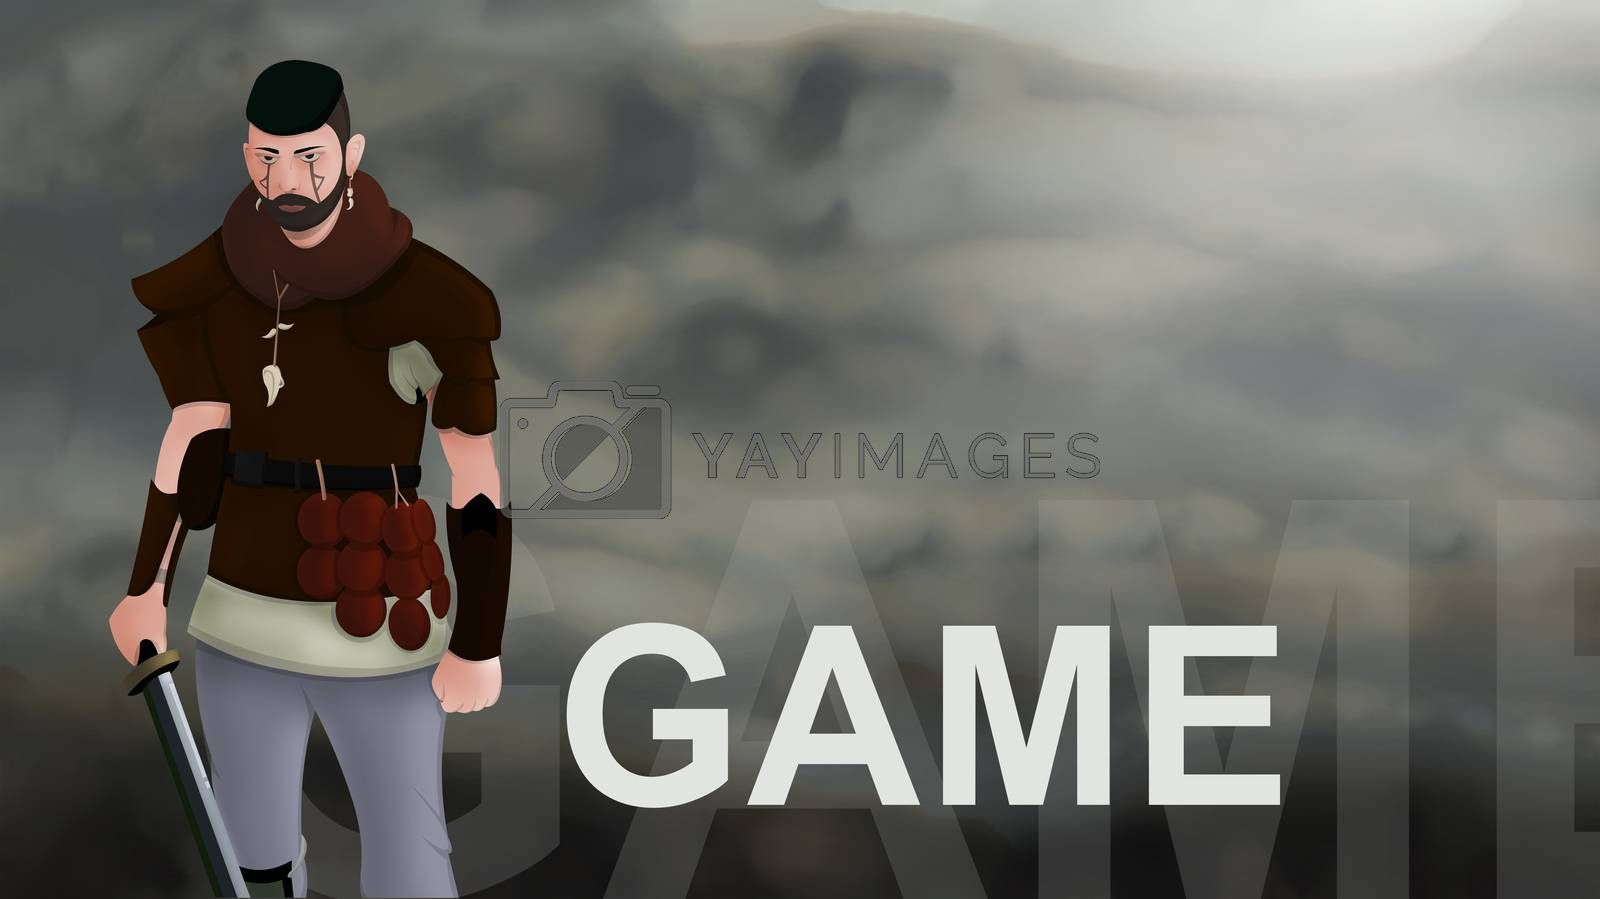 Game word text with Warrior armed with sword viking and leather armor on a gradient background. With copyspace for your text. Larp role play. Battle and medieval war. battlefield. Illustration 2d